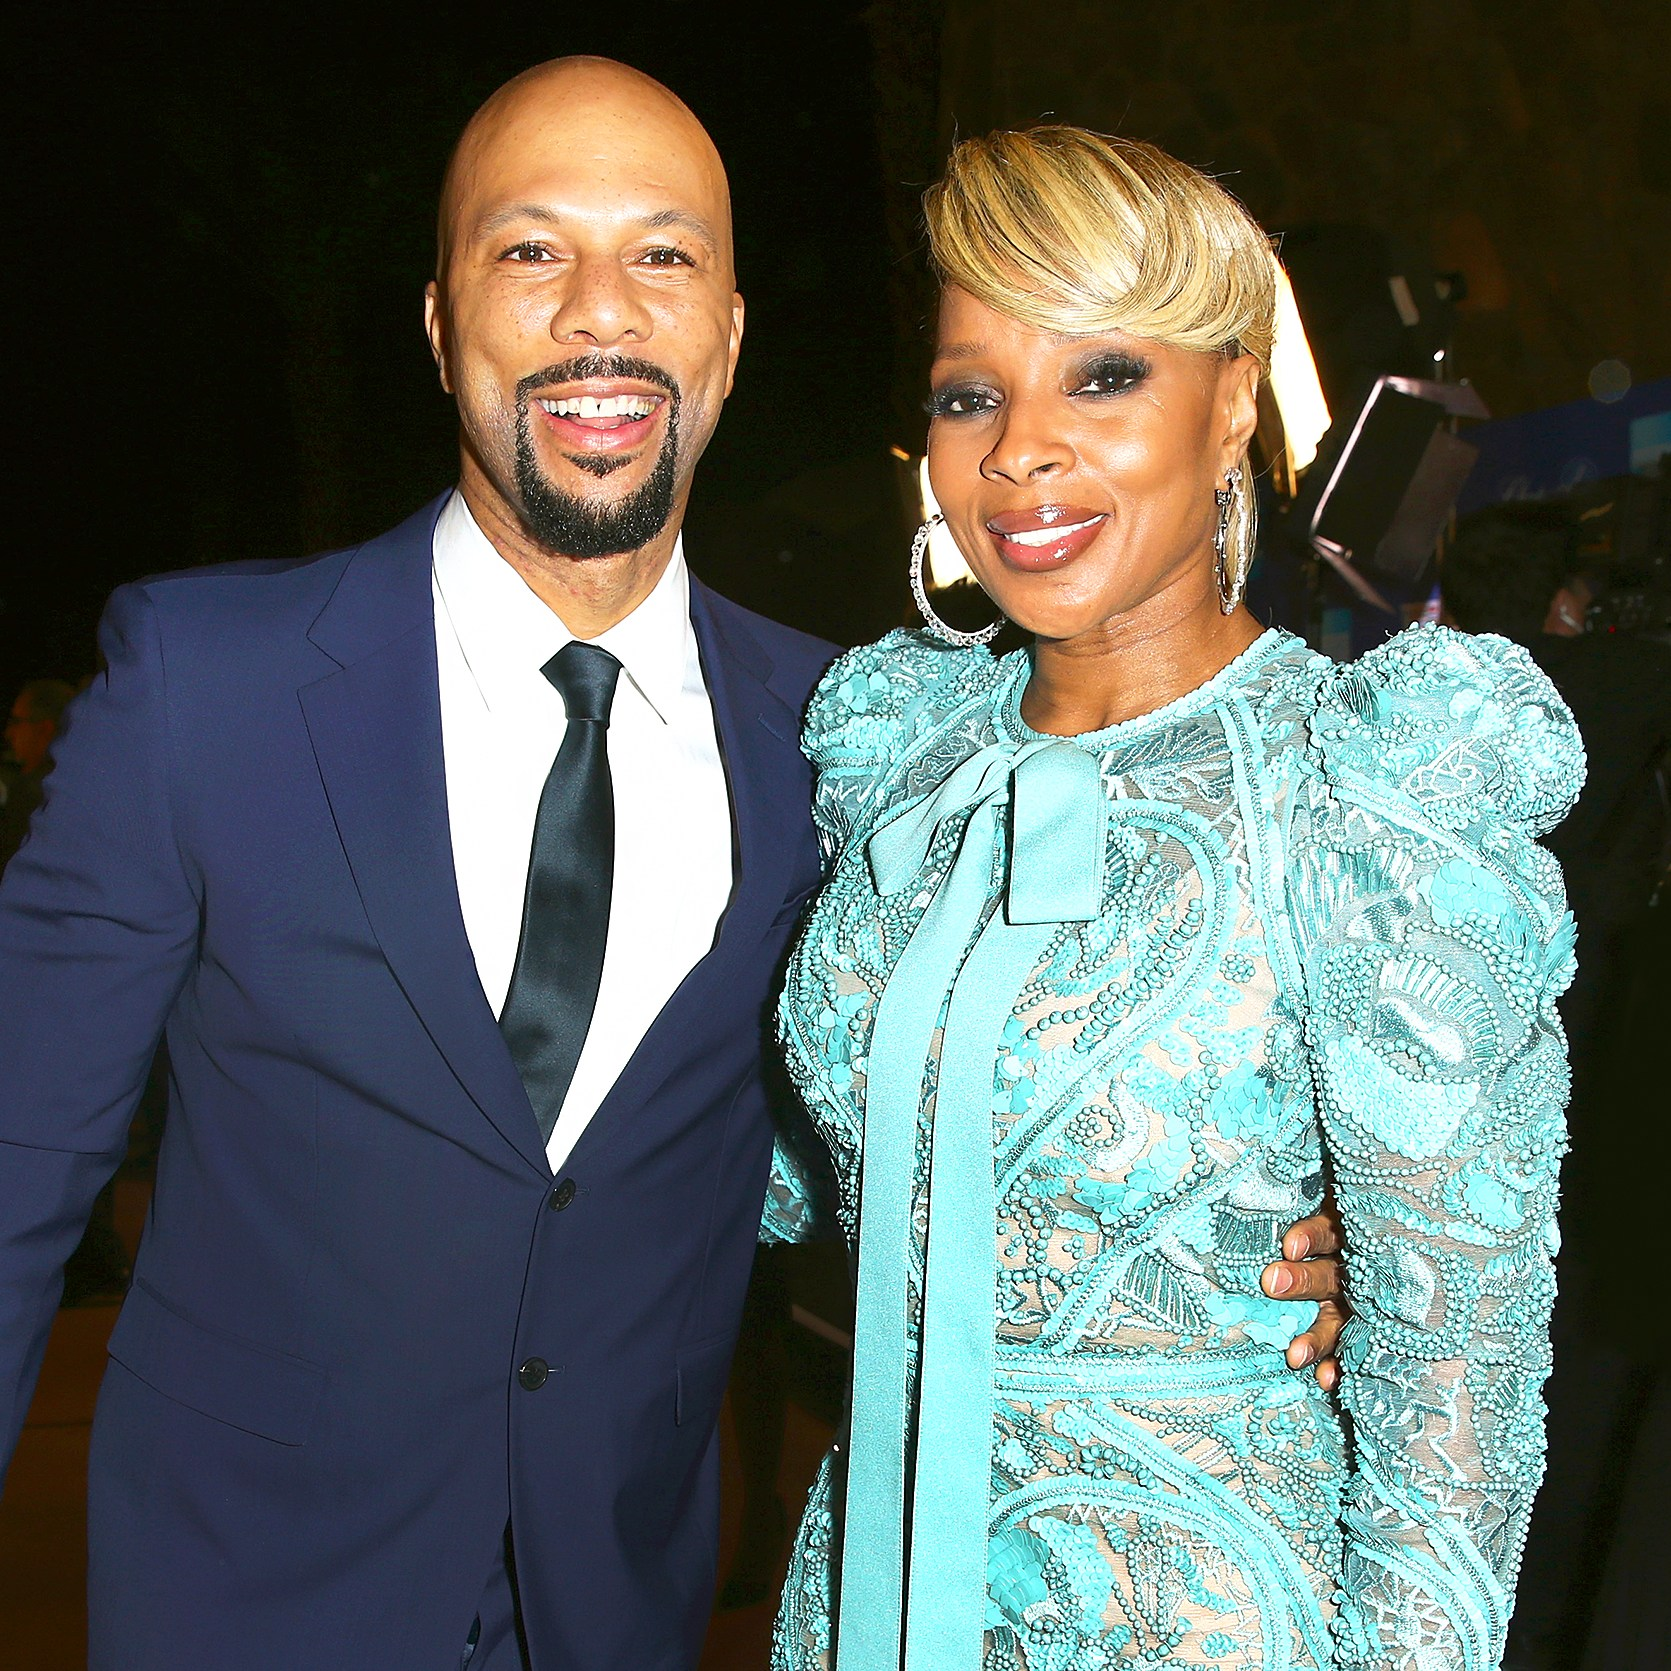 Common and Mary J. Blige attend the 29th Annual Palm Springs International Film Festival Awards Gala at Convention Center in Palm Springs, California.